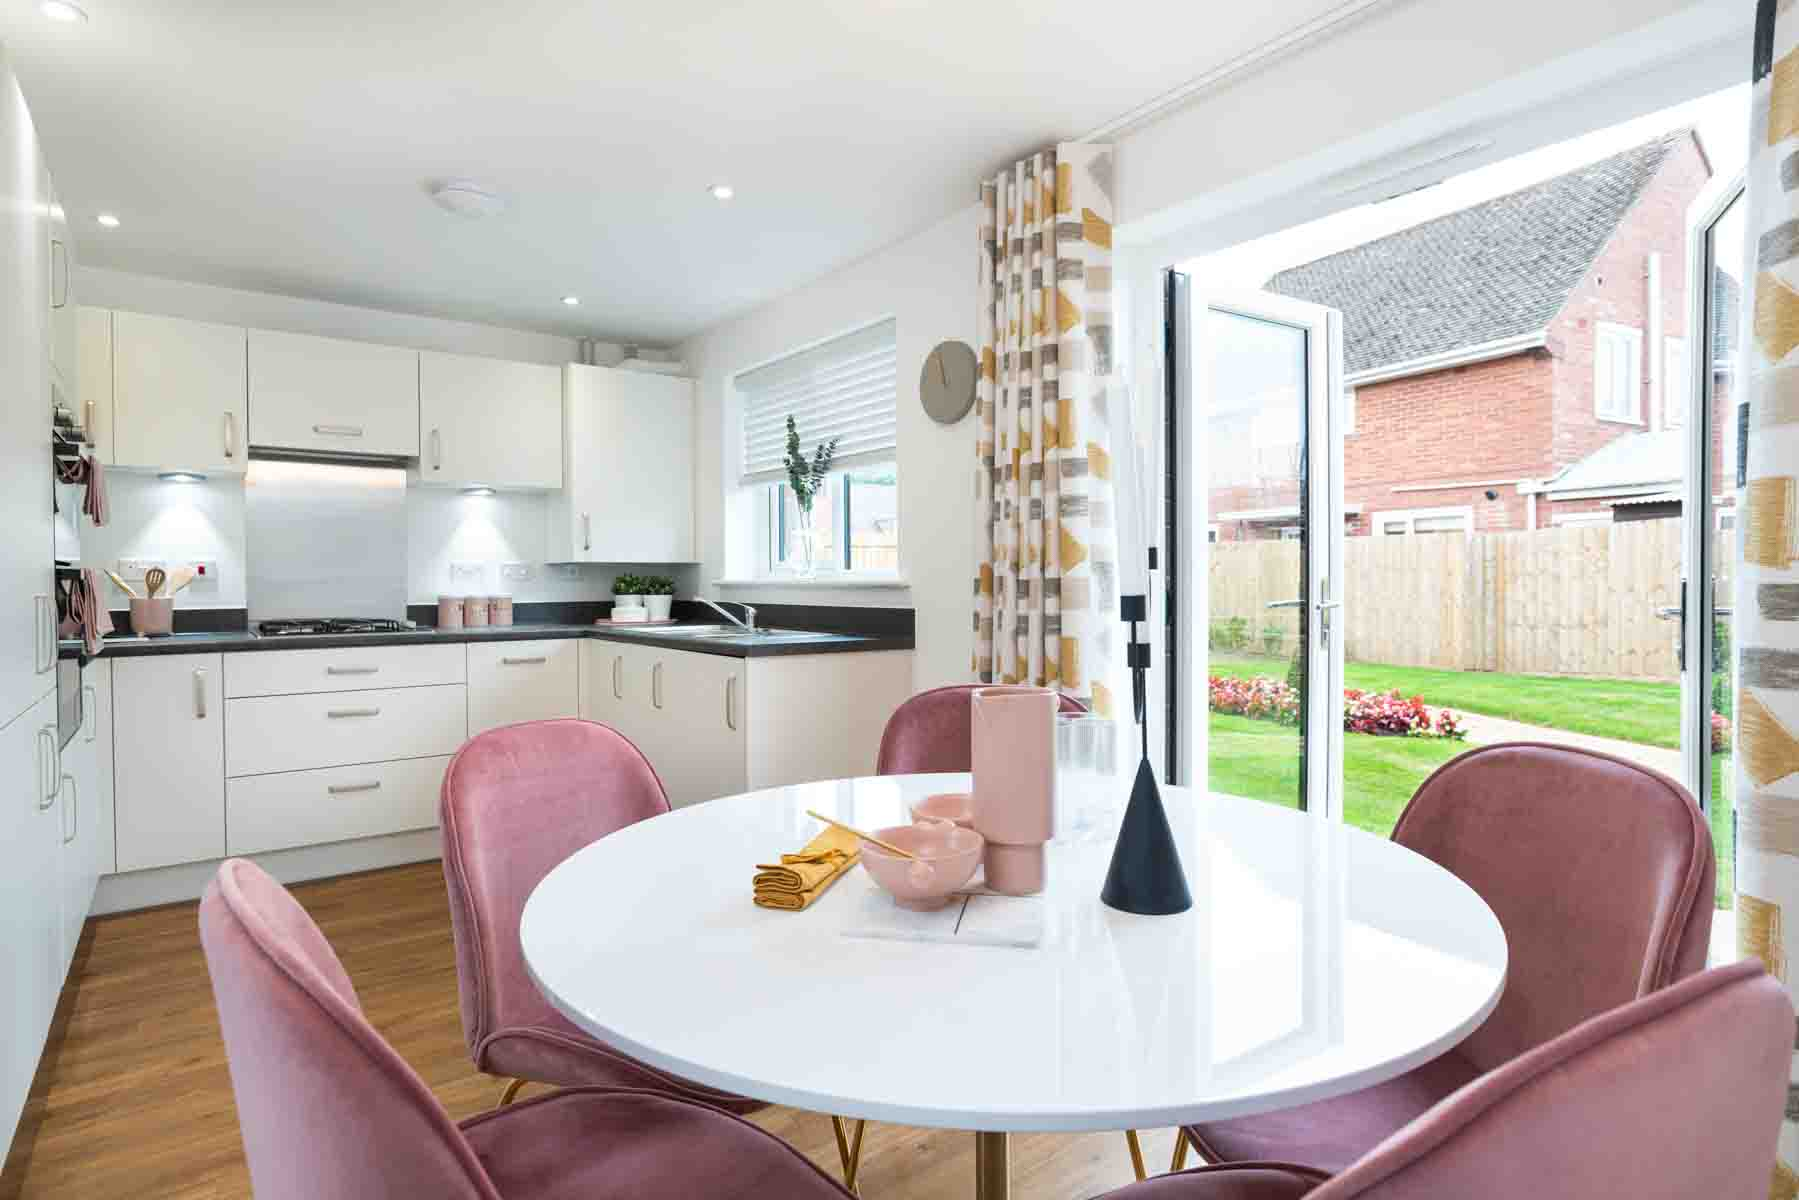 TW Exeter - Mayfield Gardens - Byford example kitchen 2